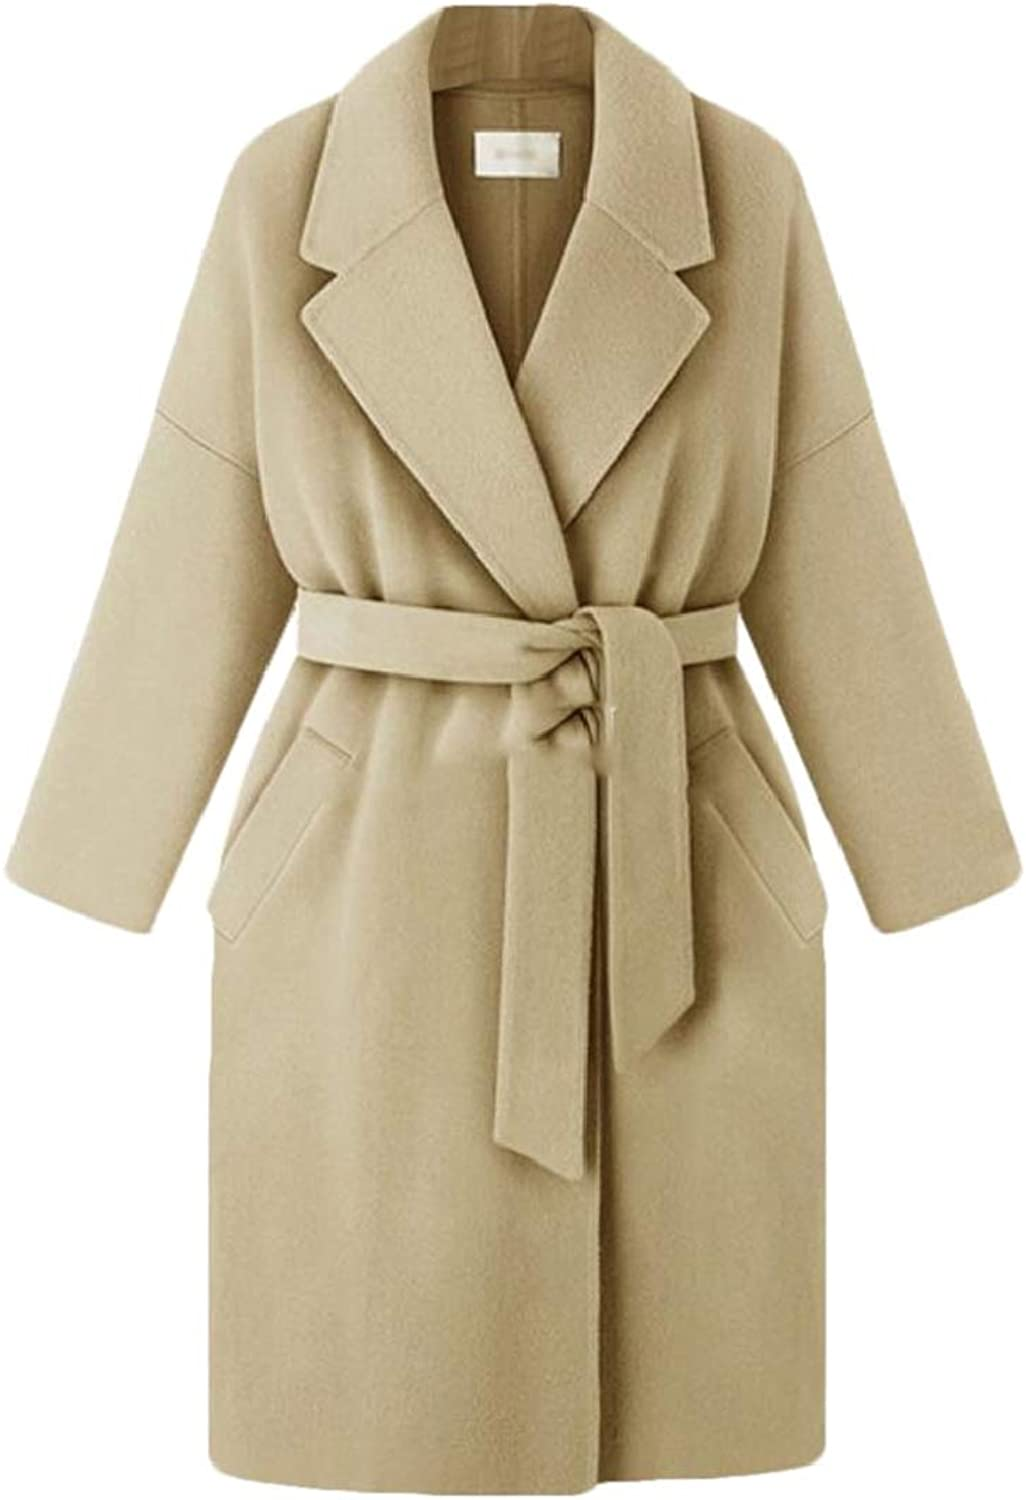 Rrive Women Belted Open Front Winter Overcoat Wool Blend Long Trench Coat